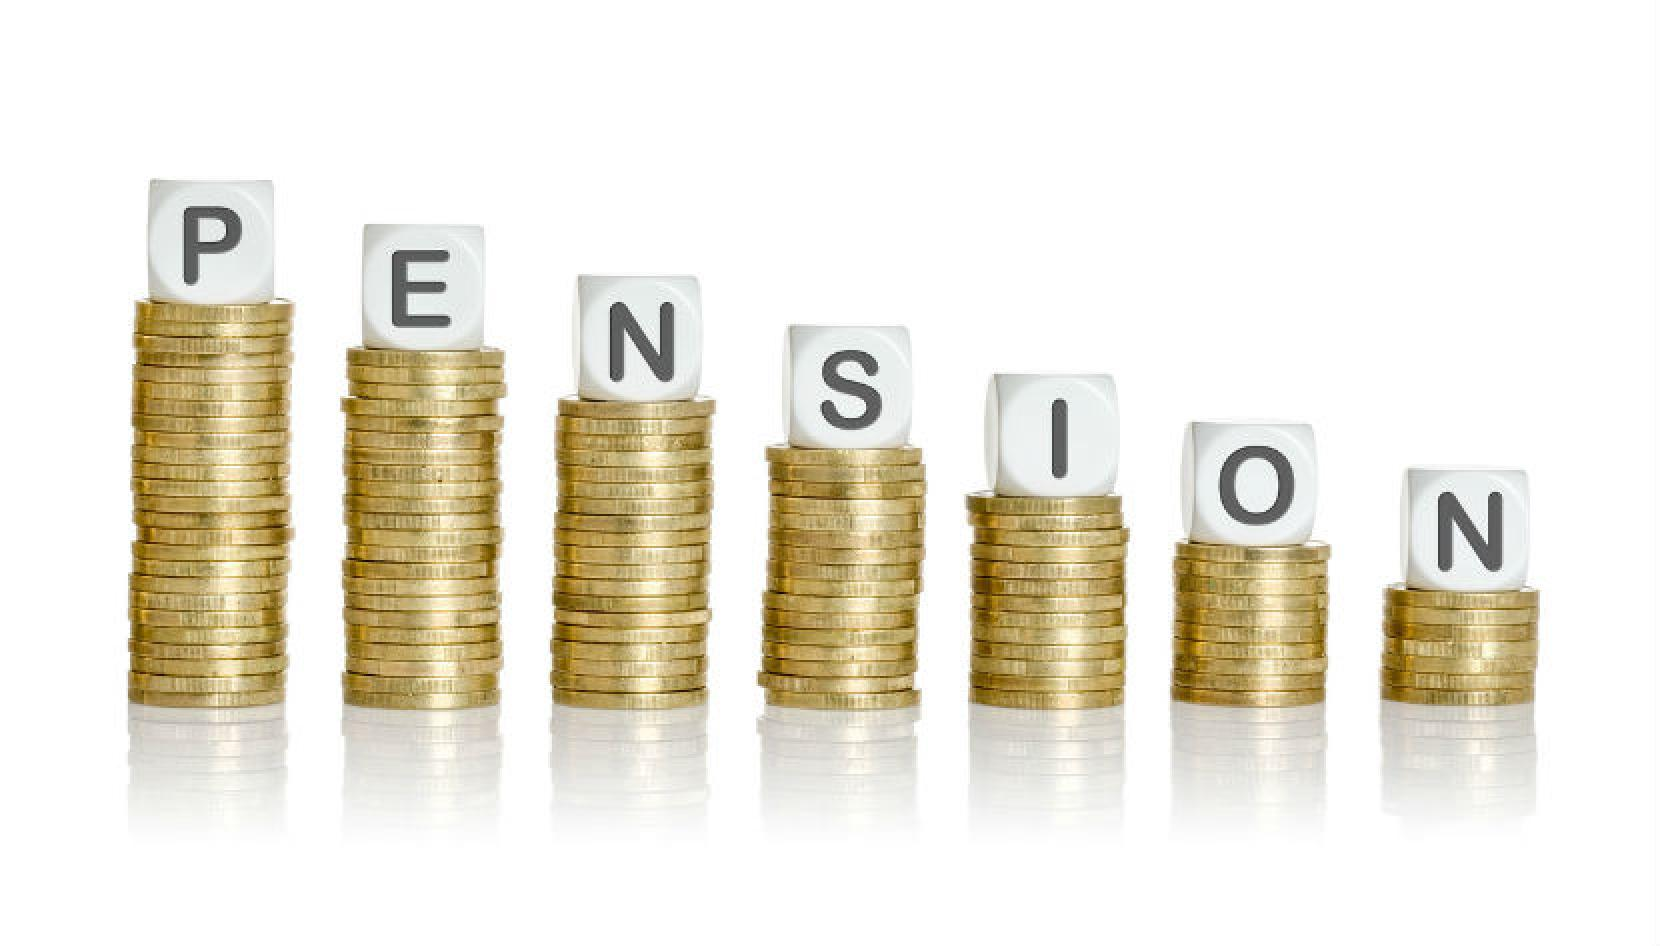 do the pension plans